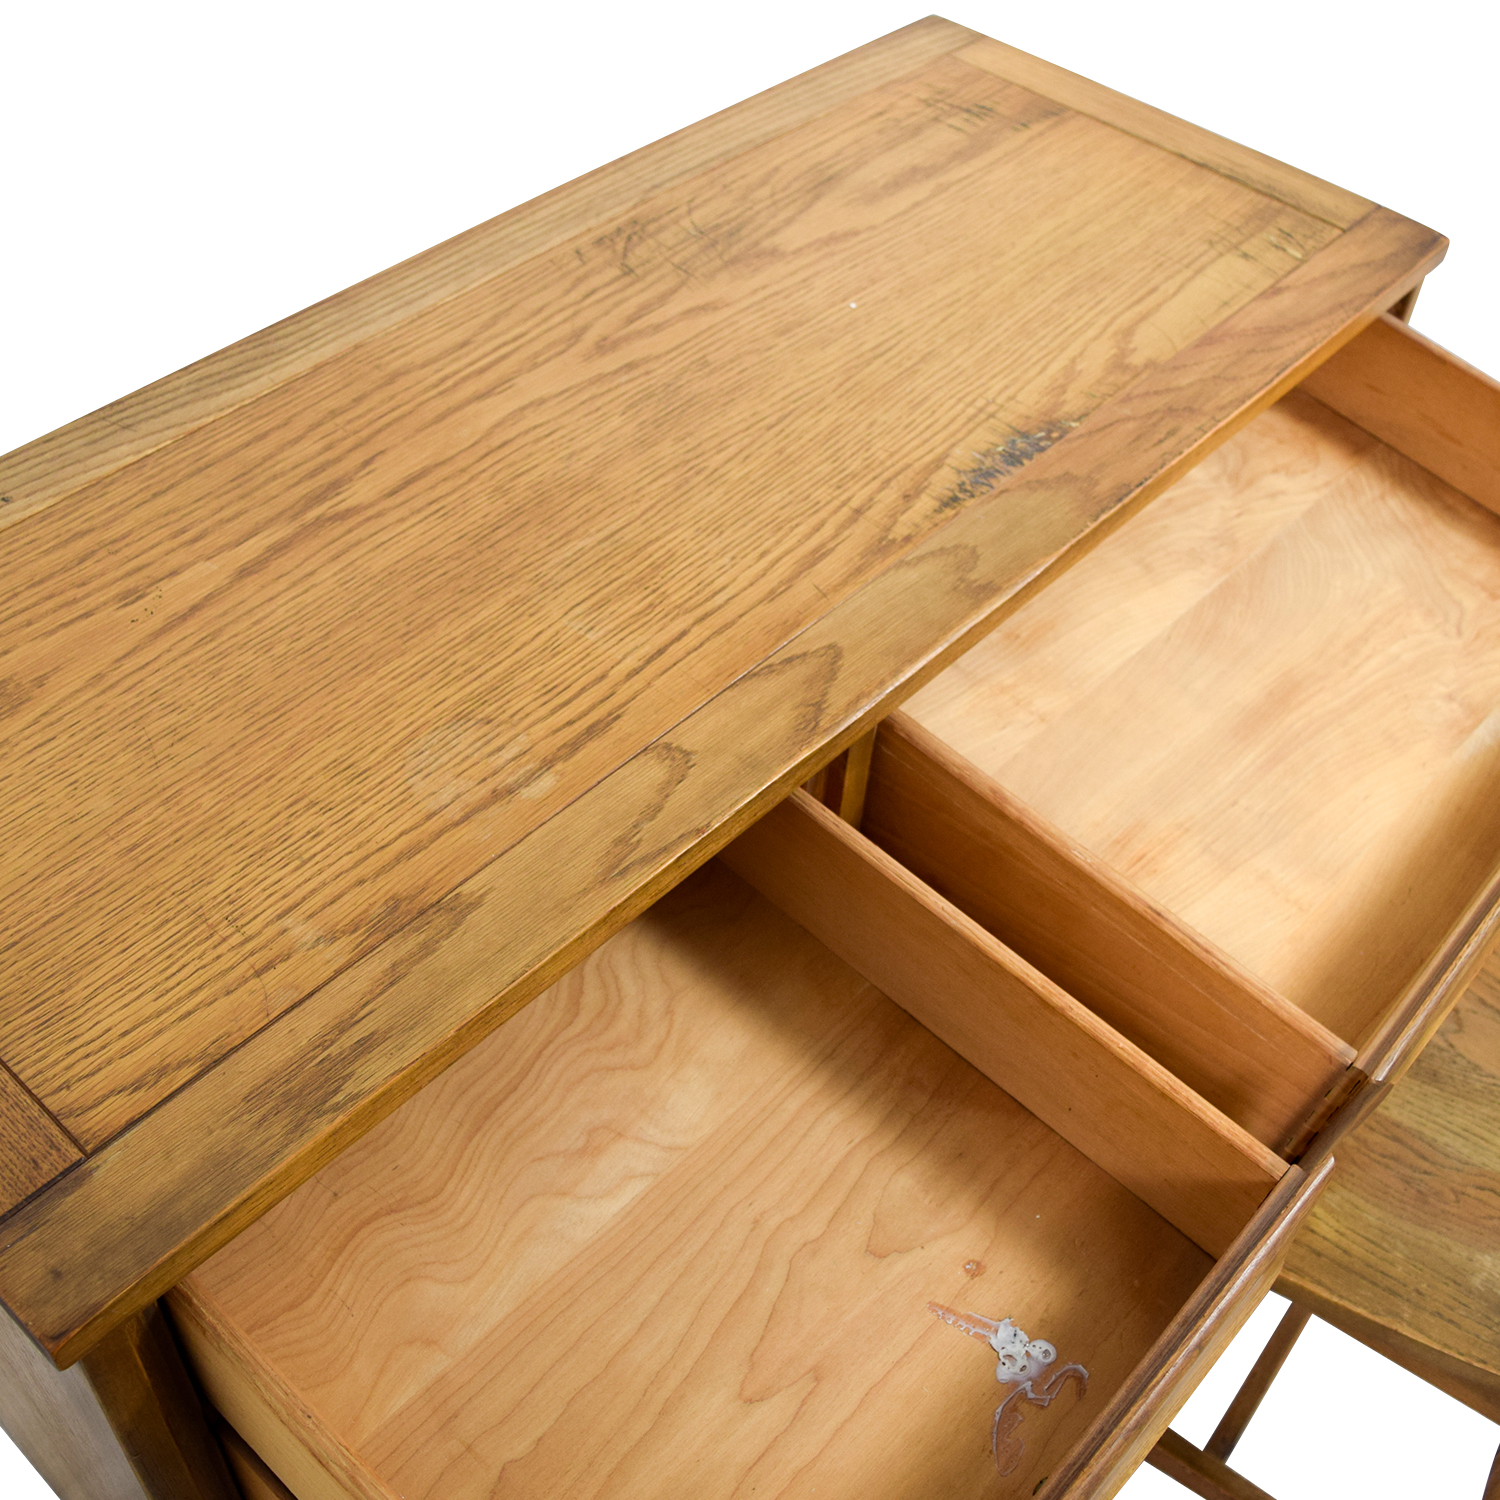 Vintage Mid Century Oak Desk with Chair sale